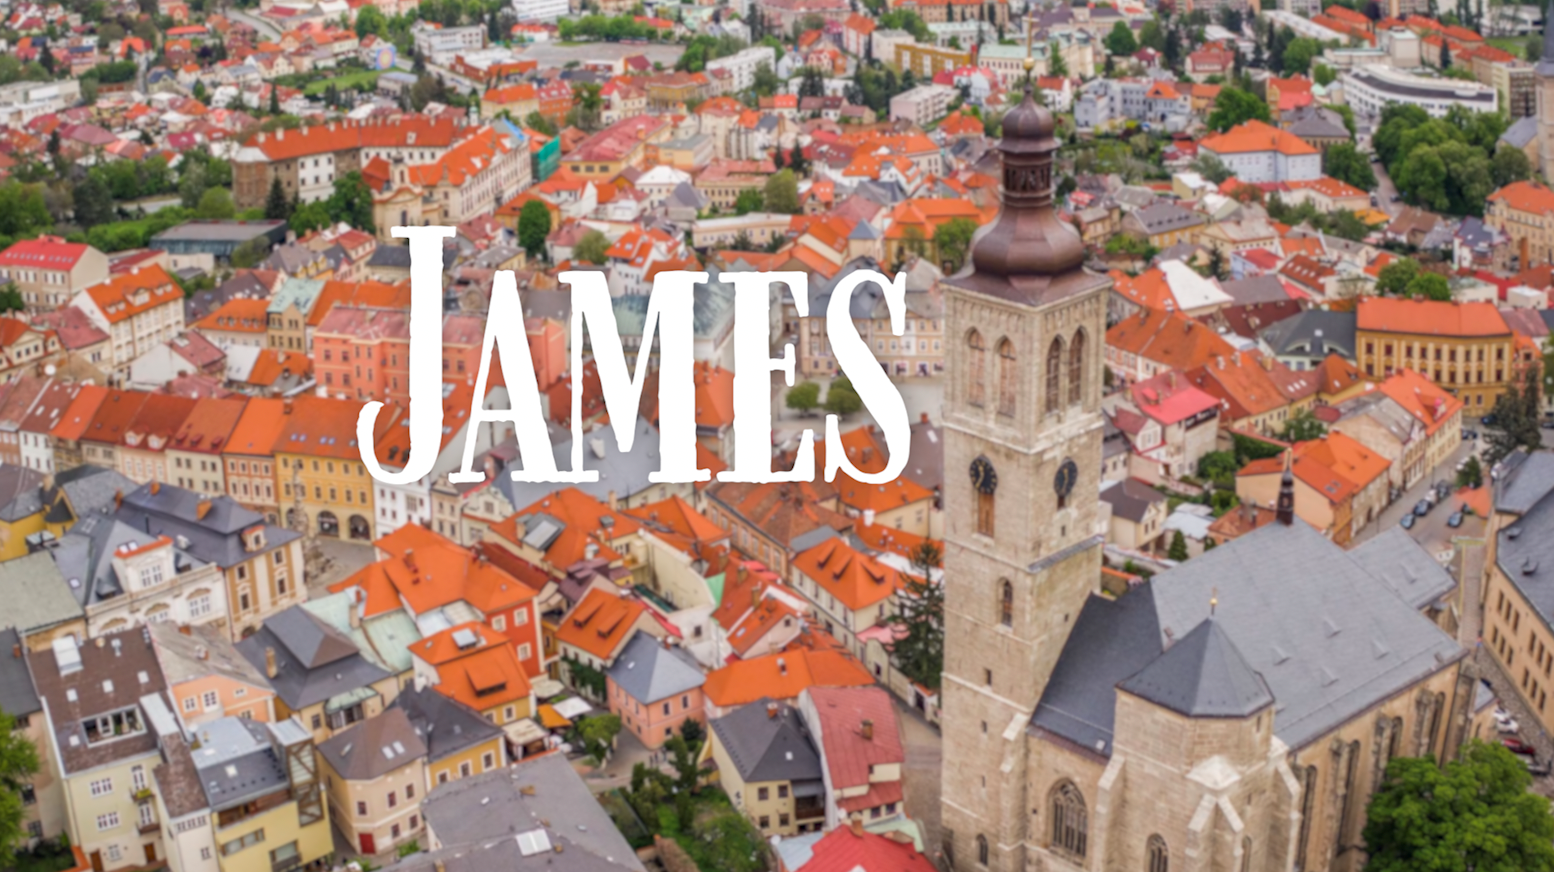 Graphic for Oct. 24, 2021 sermon on the book of James.